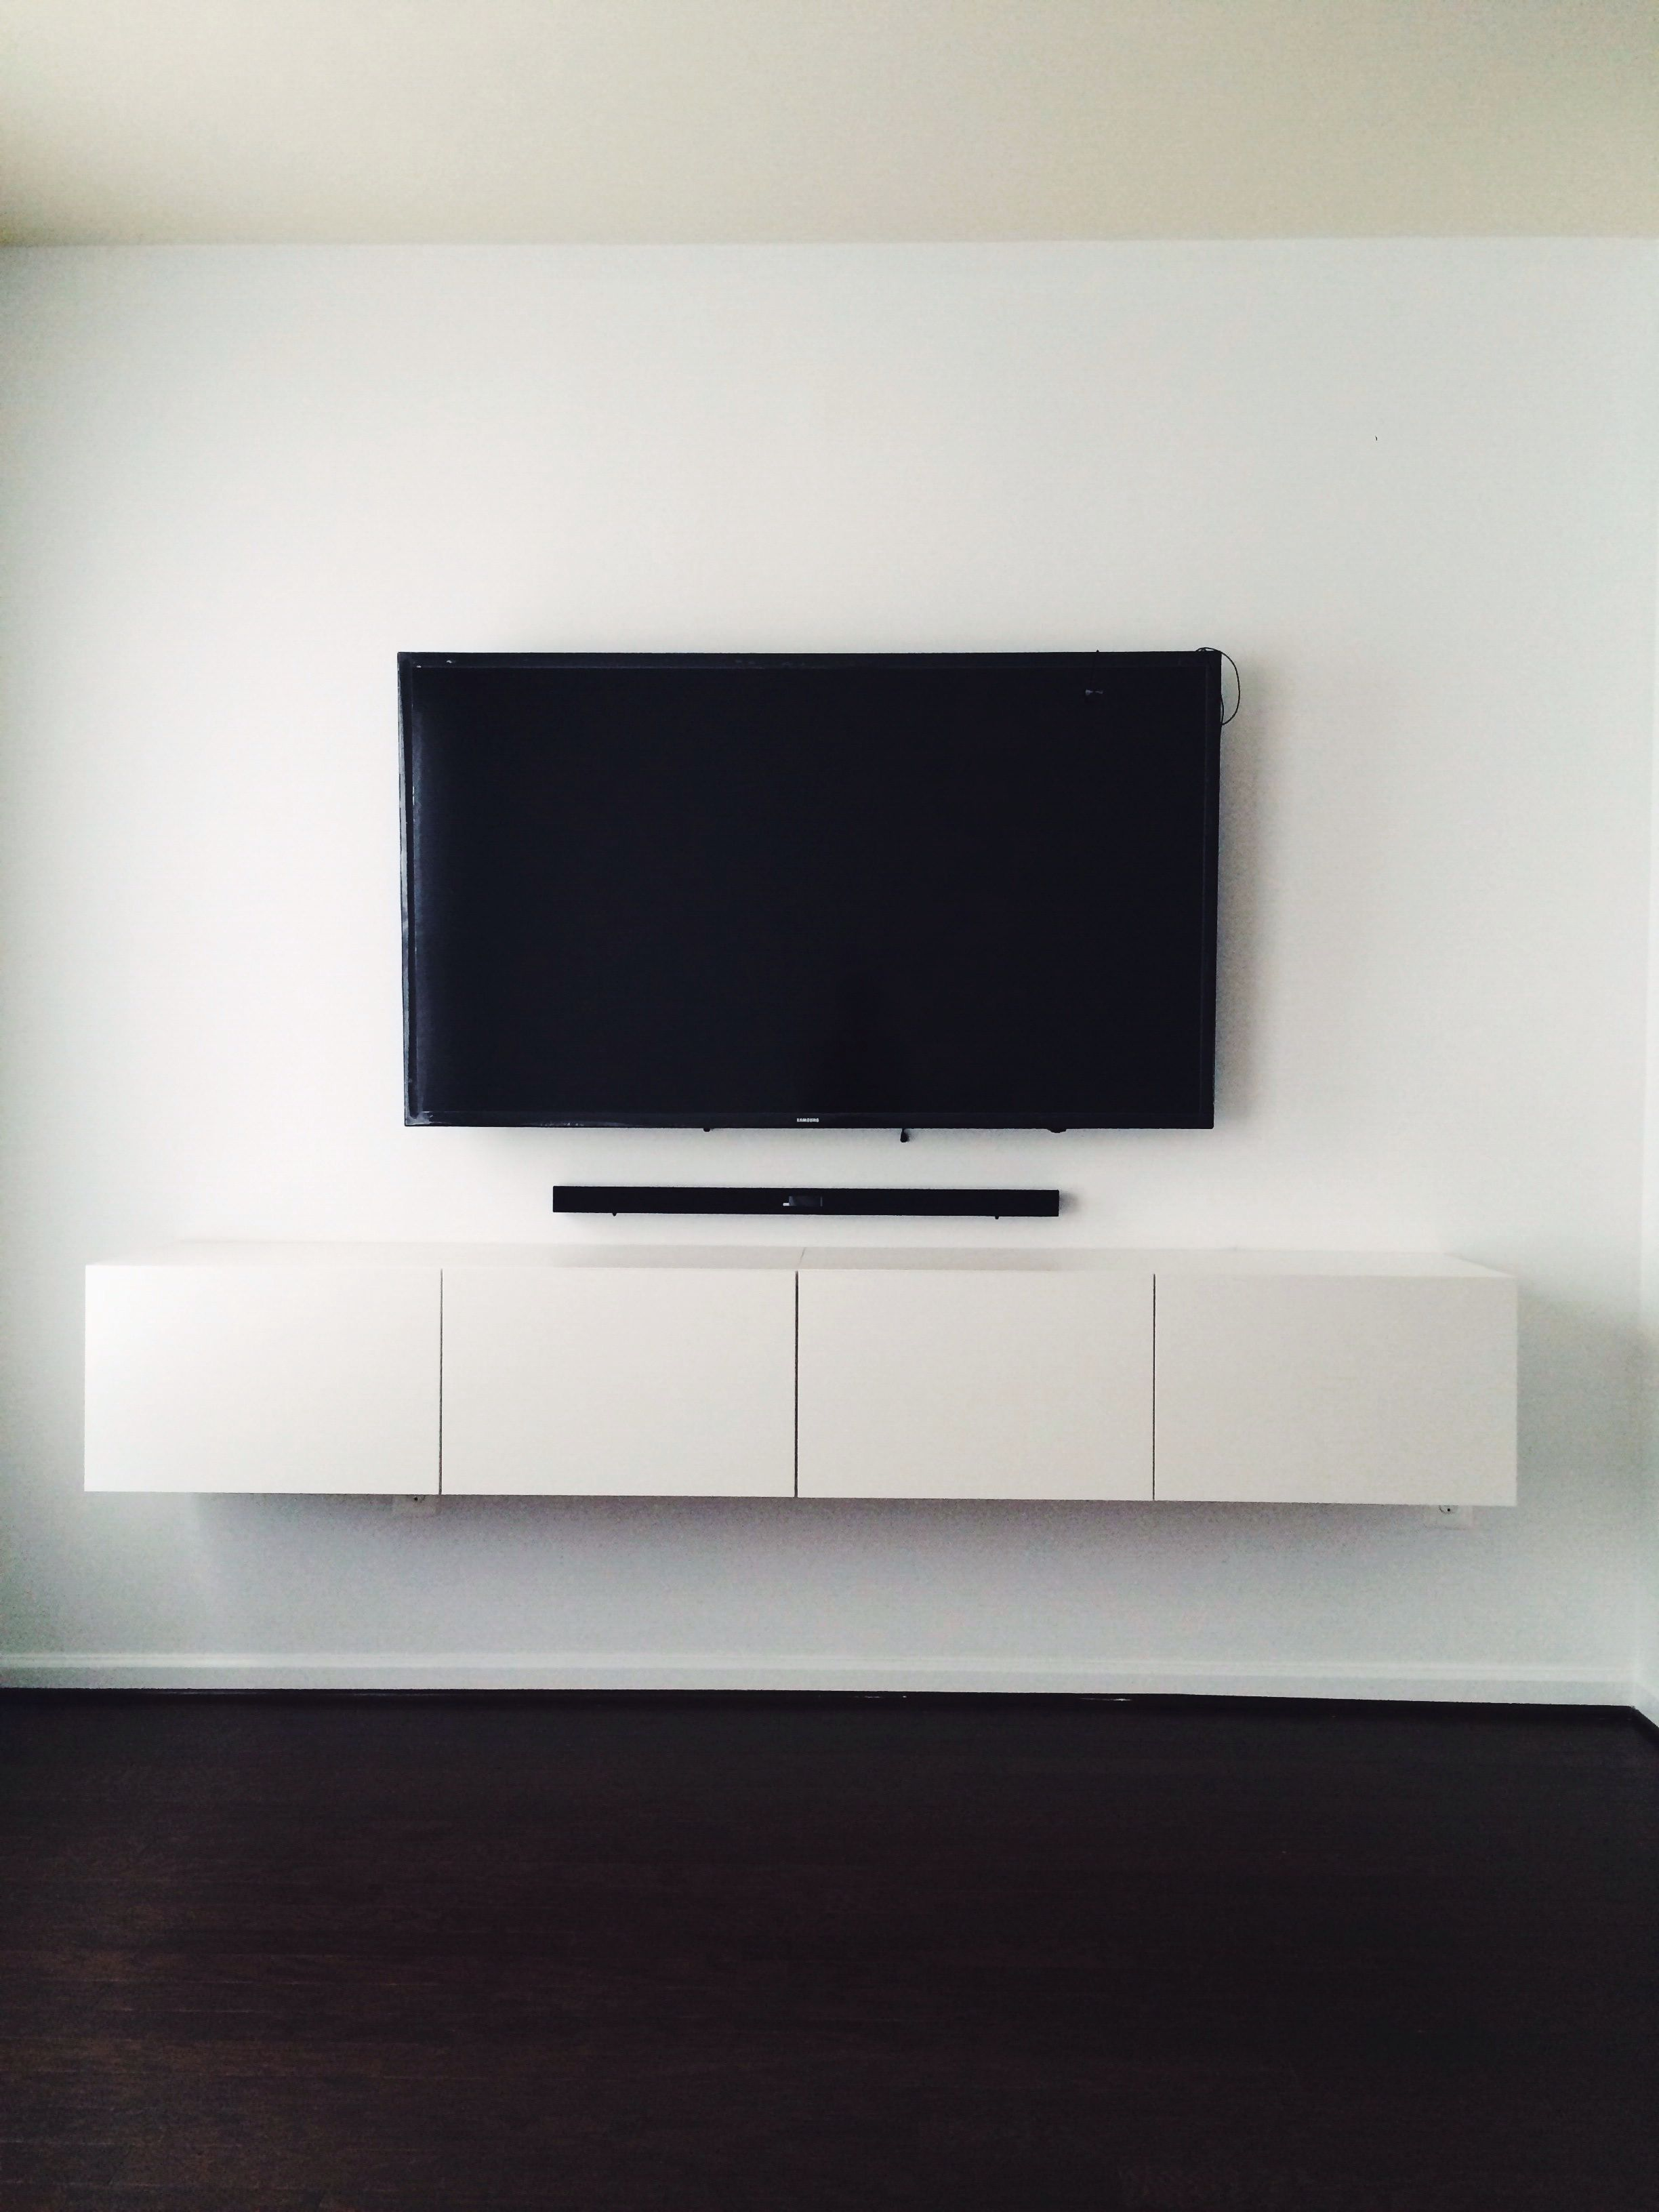 Ikea BestÅ Media Console Mounted Tv With Hidden Wires Now That S Clean